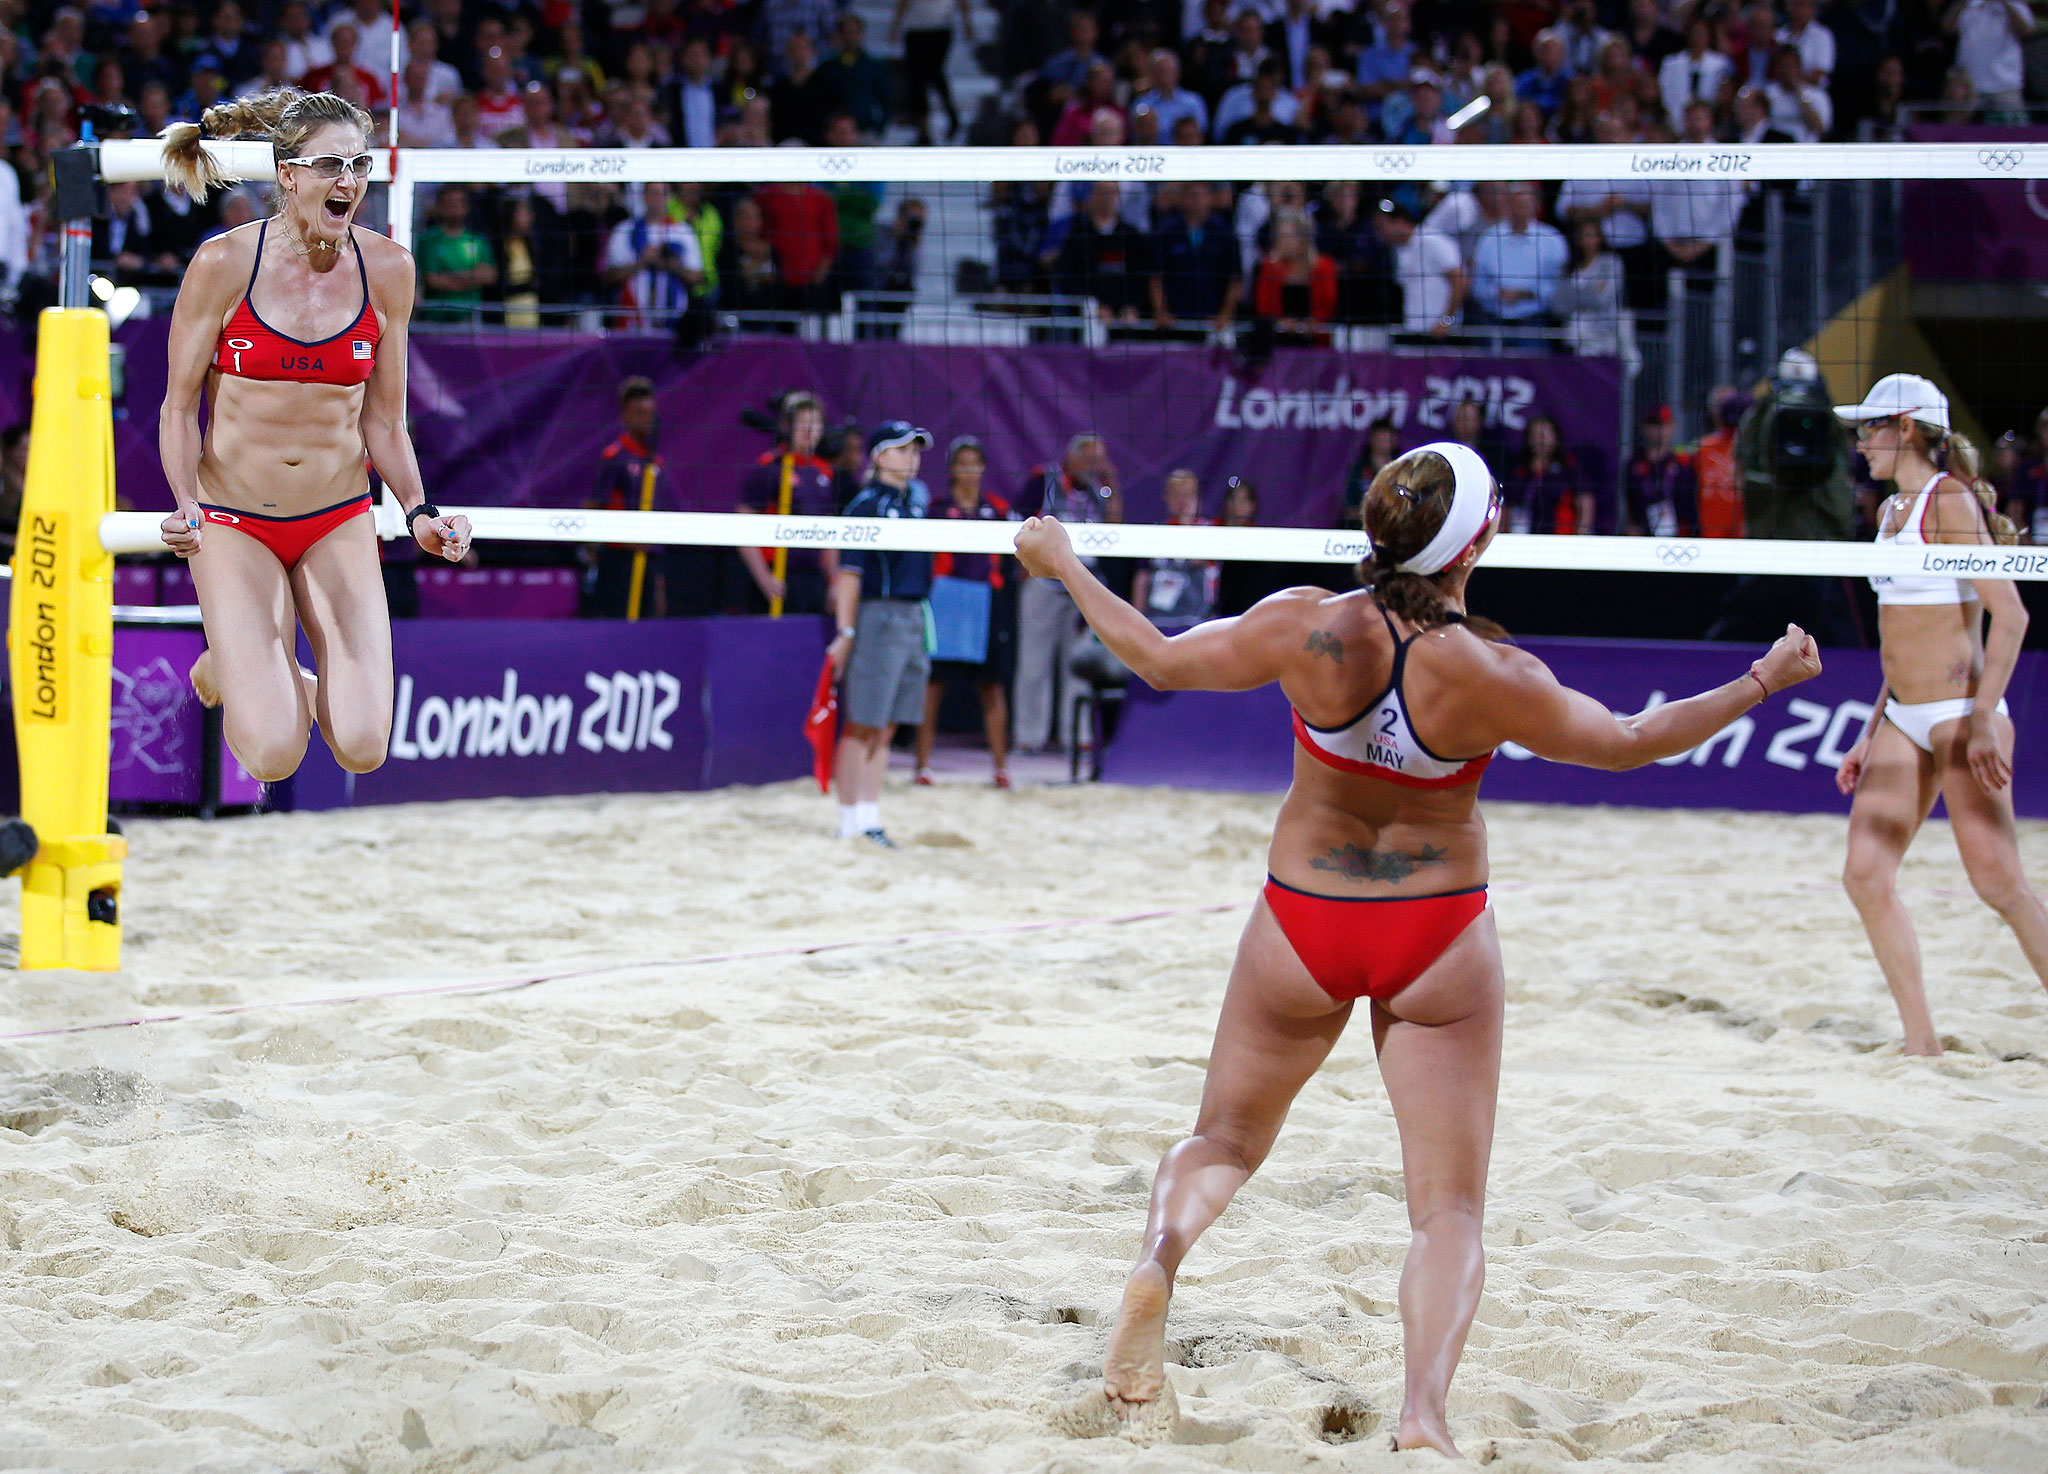 Misty May-Treanor and Kerri Walsh Jennings